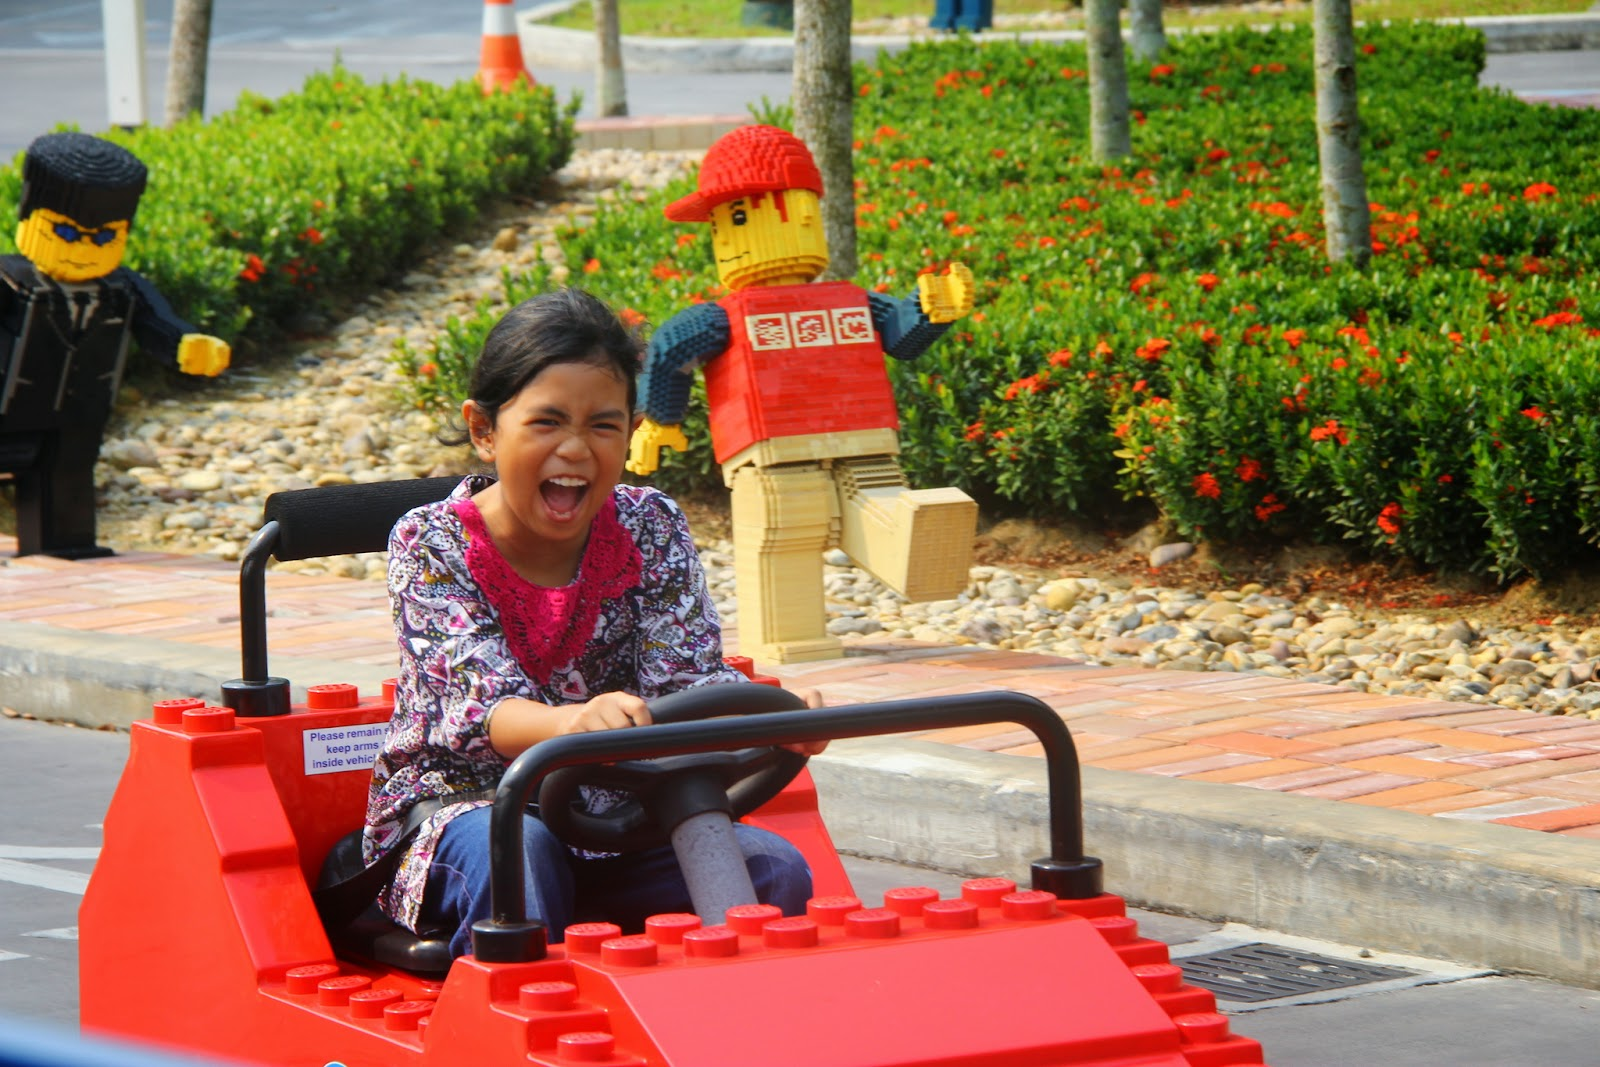 Driving School, LEGO City